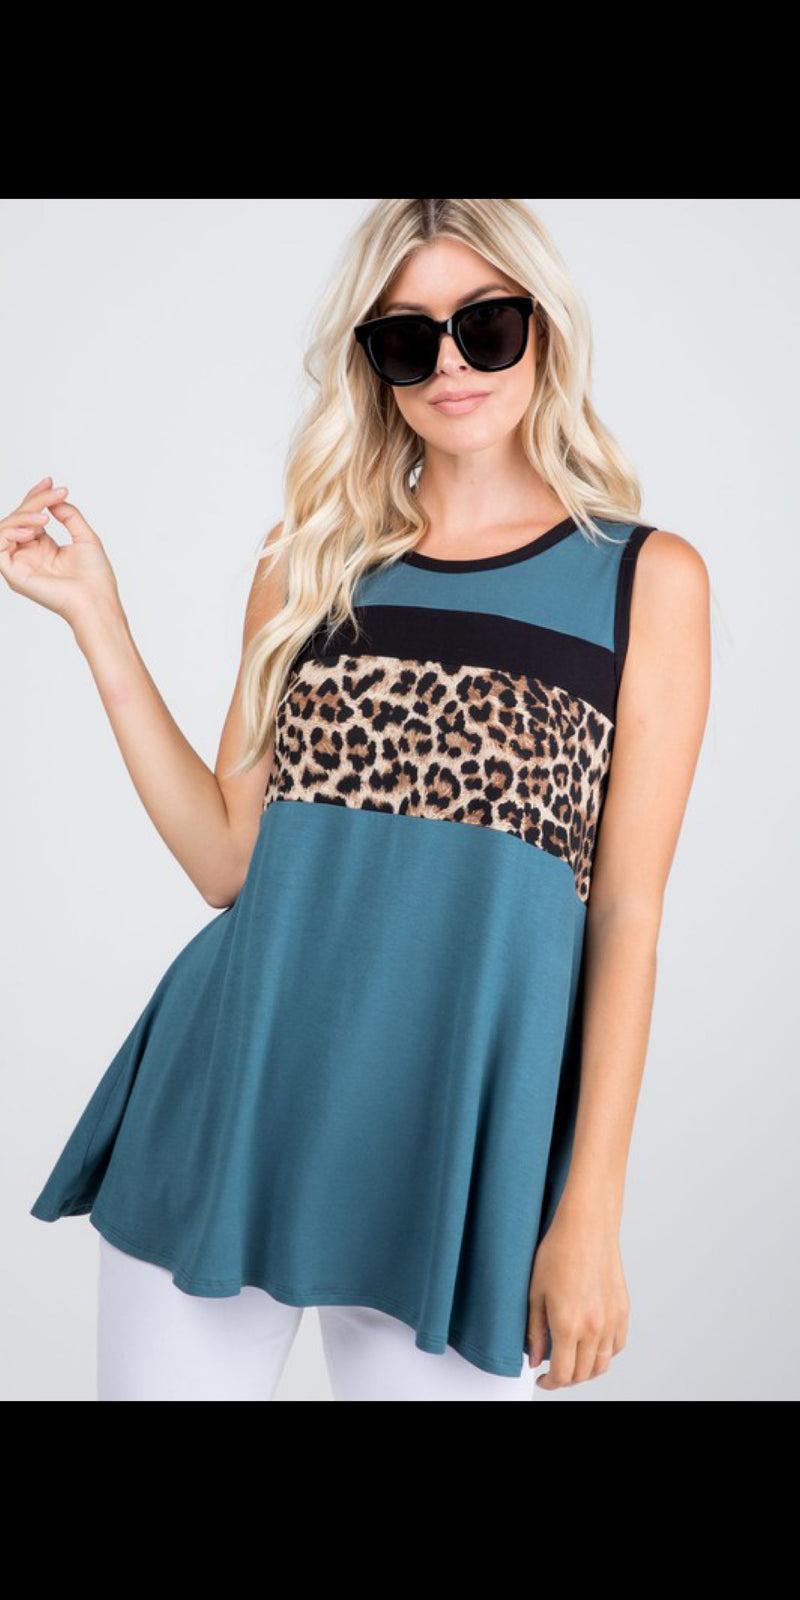 Fanning Teal Leopard Top - Also in Plus Size